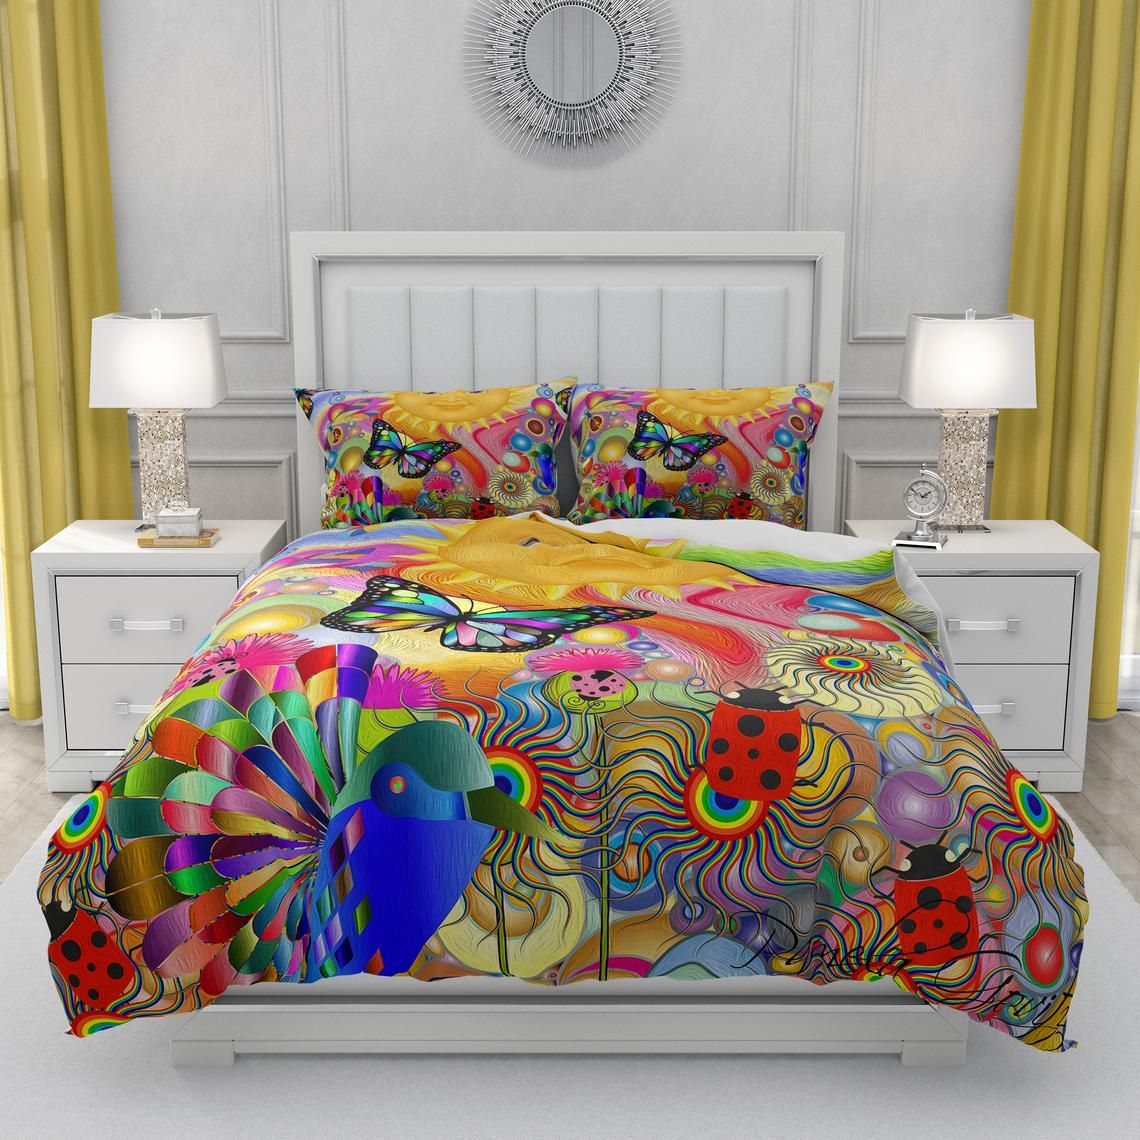 Sunshine Hippie Comforter Duvet Cover Pillow Shams Bettbezug Bettdeckenbezug Bett Ideen